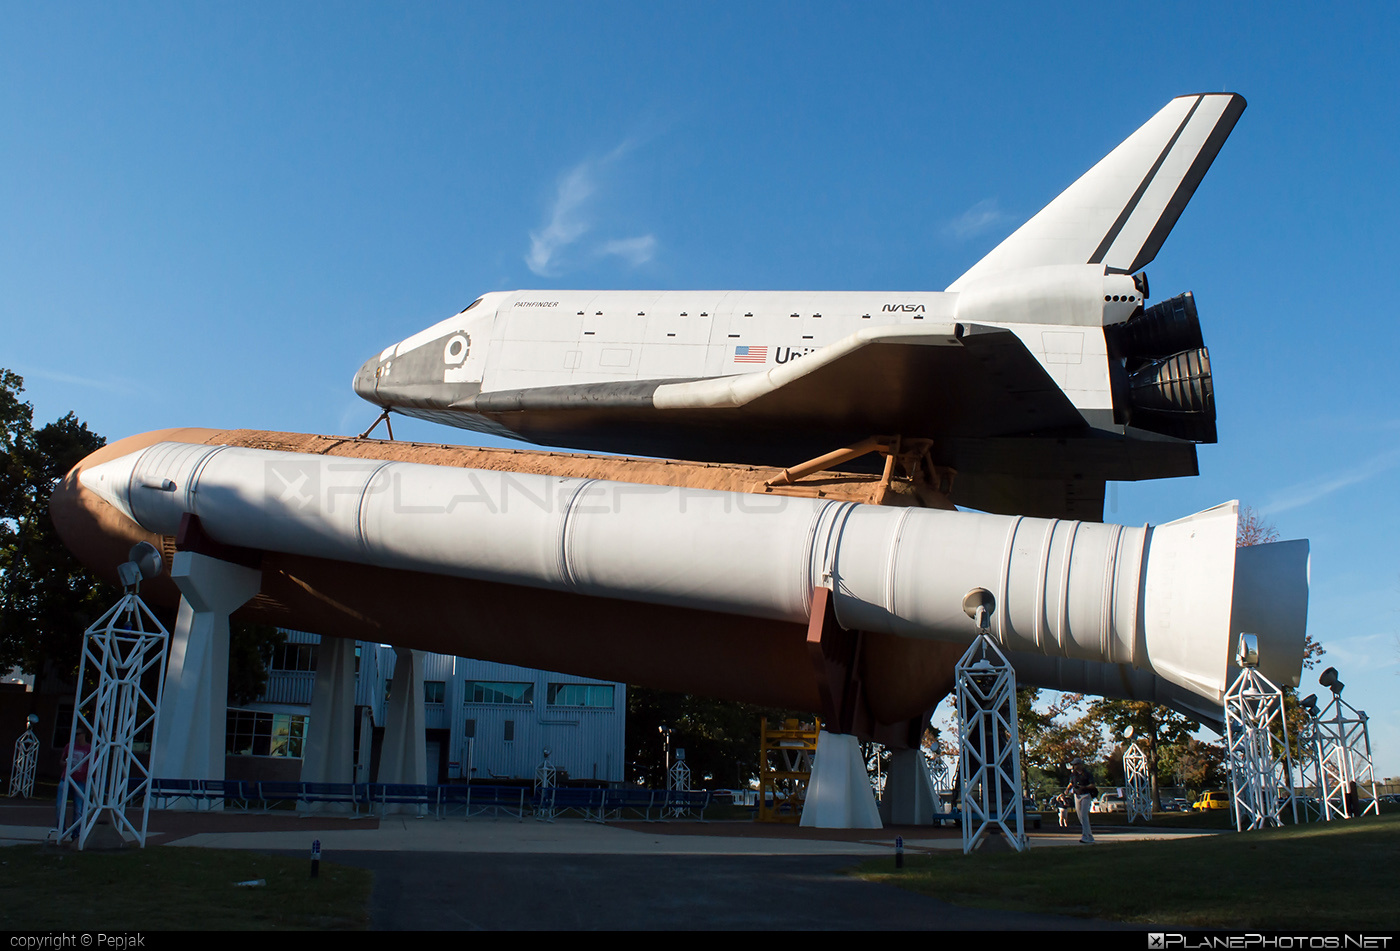 Rockwell Space Shuttle (mock-up) - OV-098 operated by United States of America - National Aeronautics and Space Administration (NASA) #rockwell